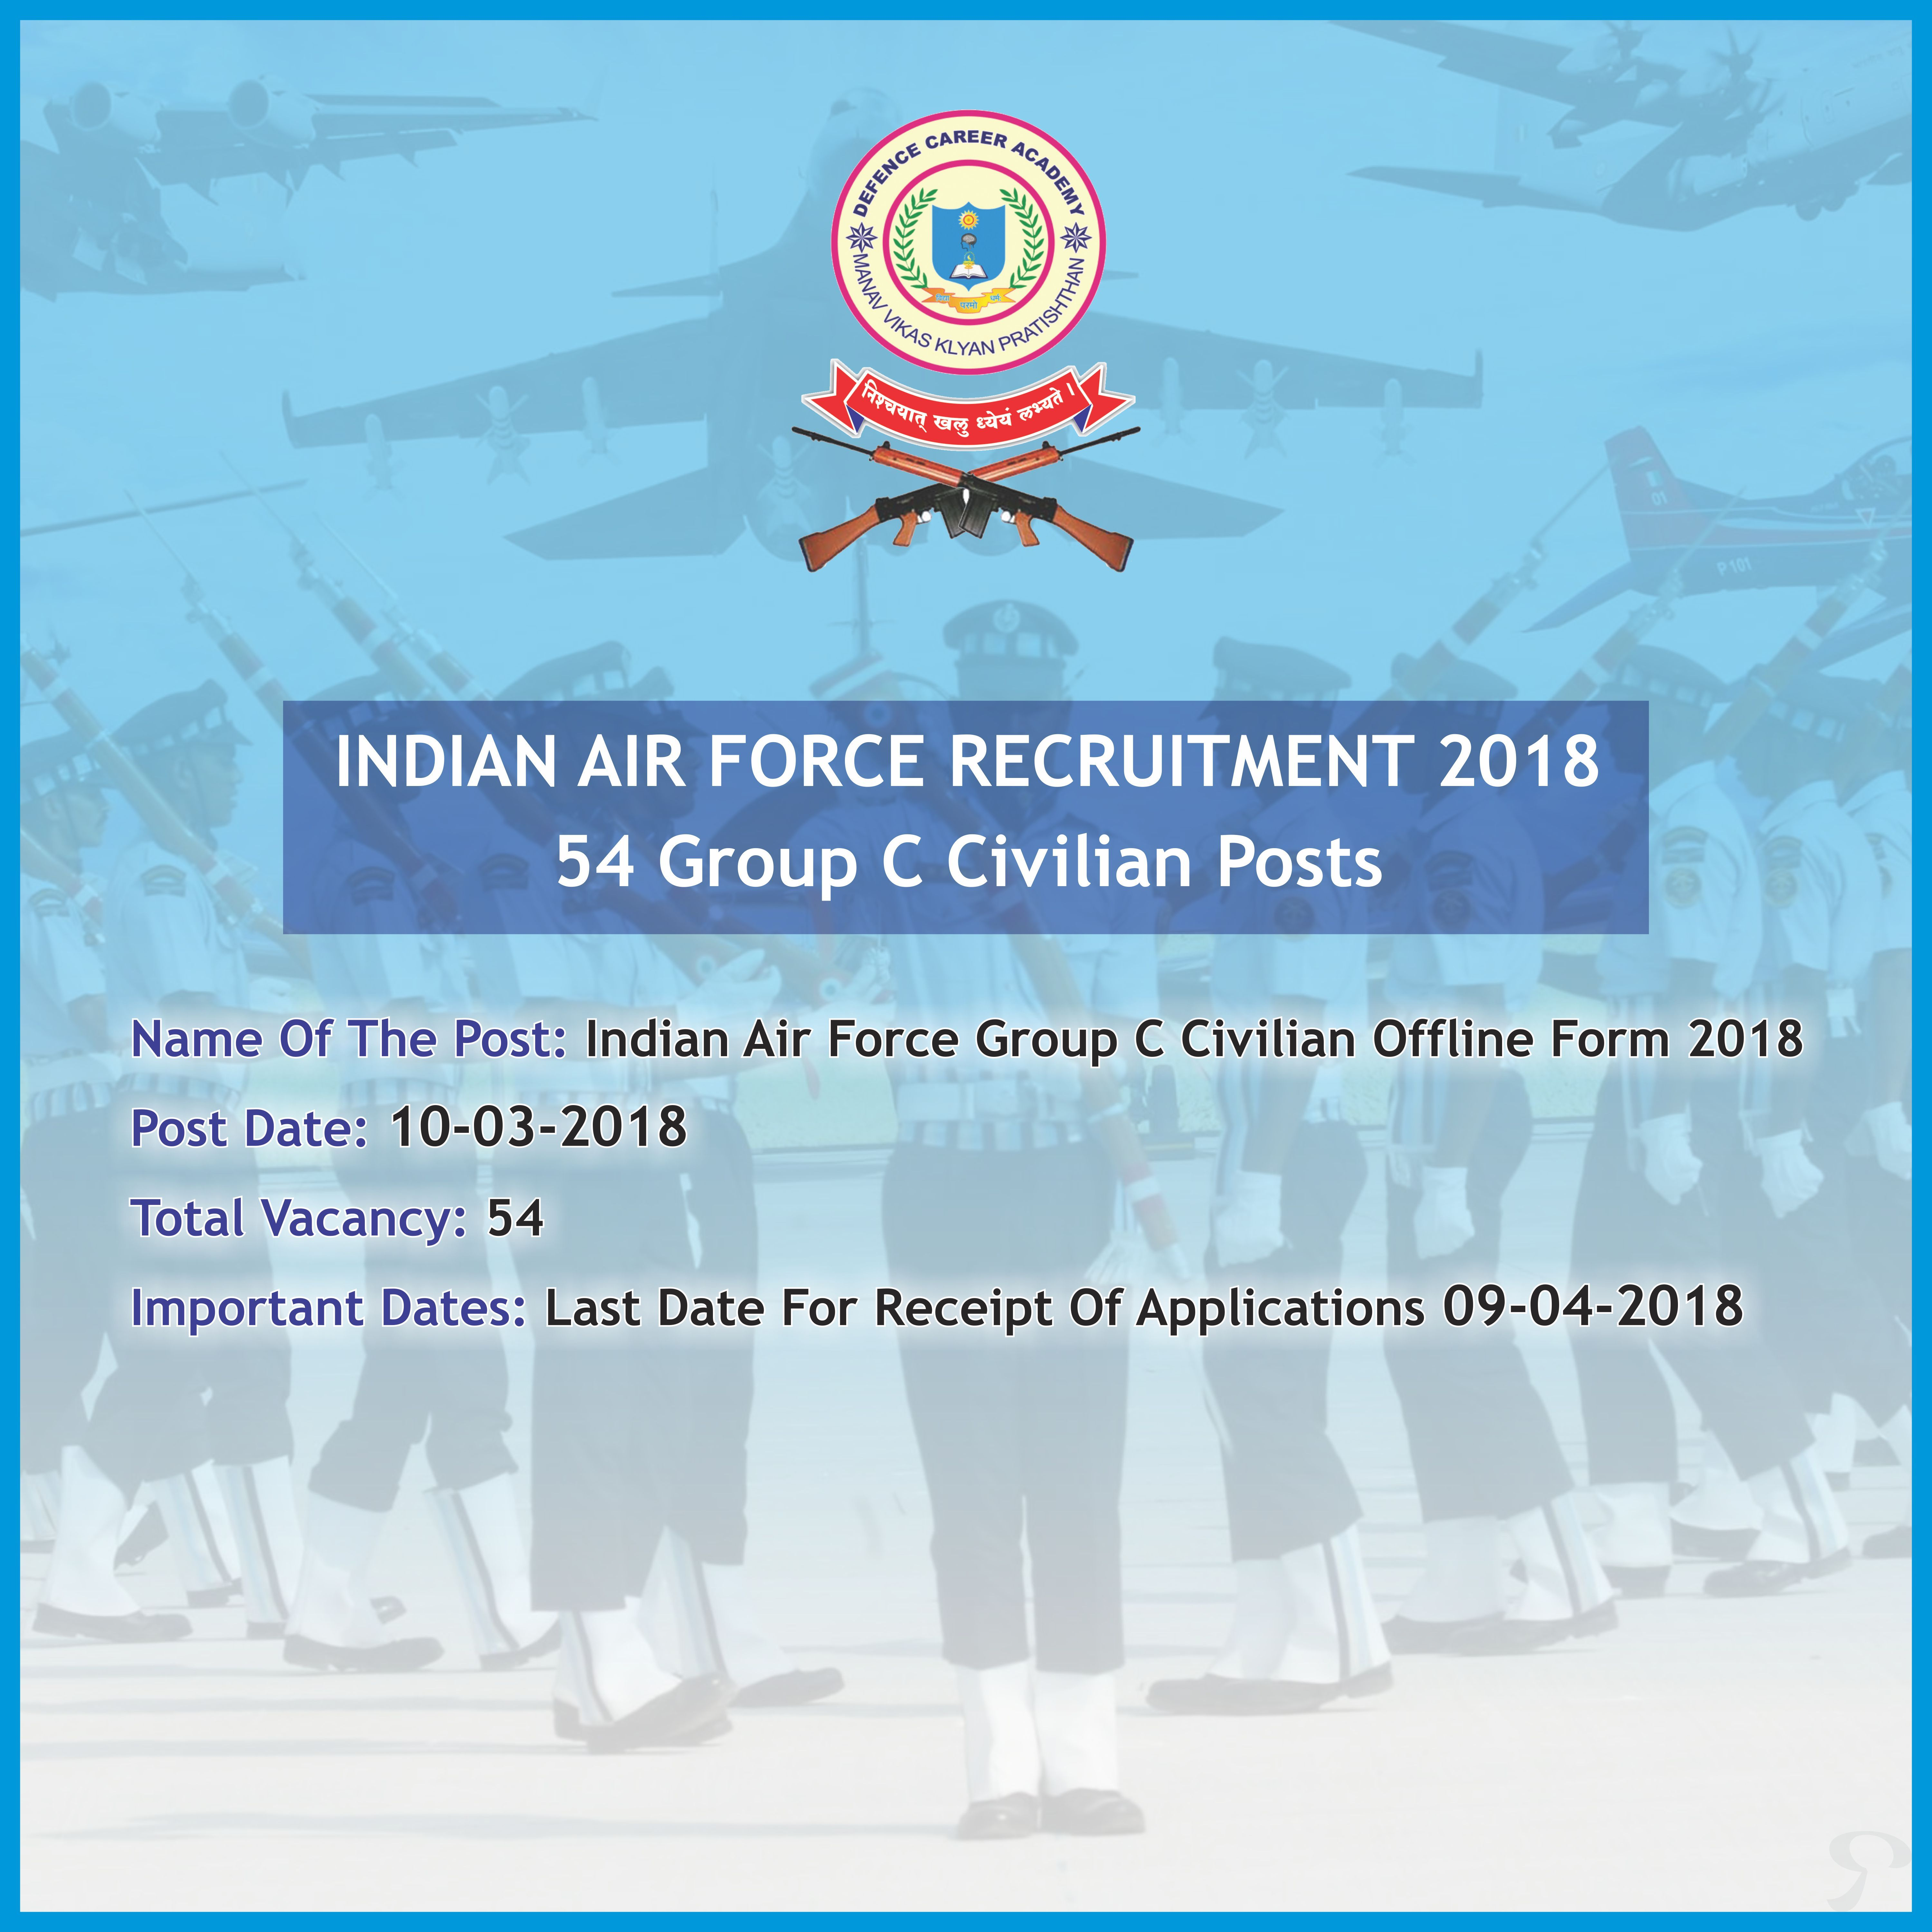 Indian Air Force Recruitment 2018 Apply now